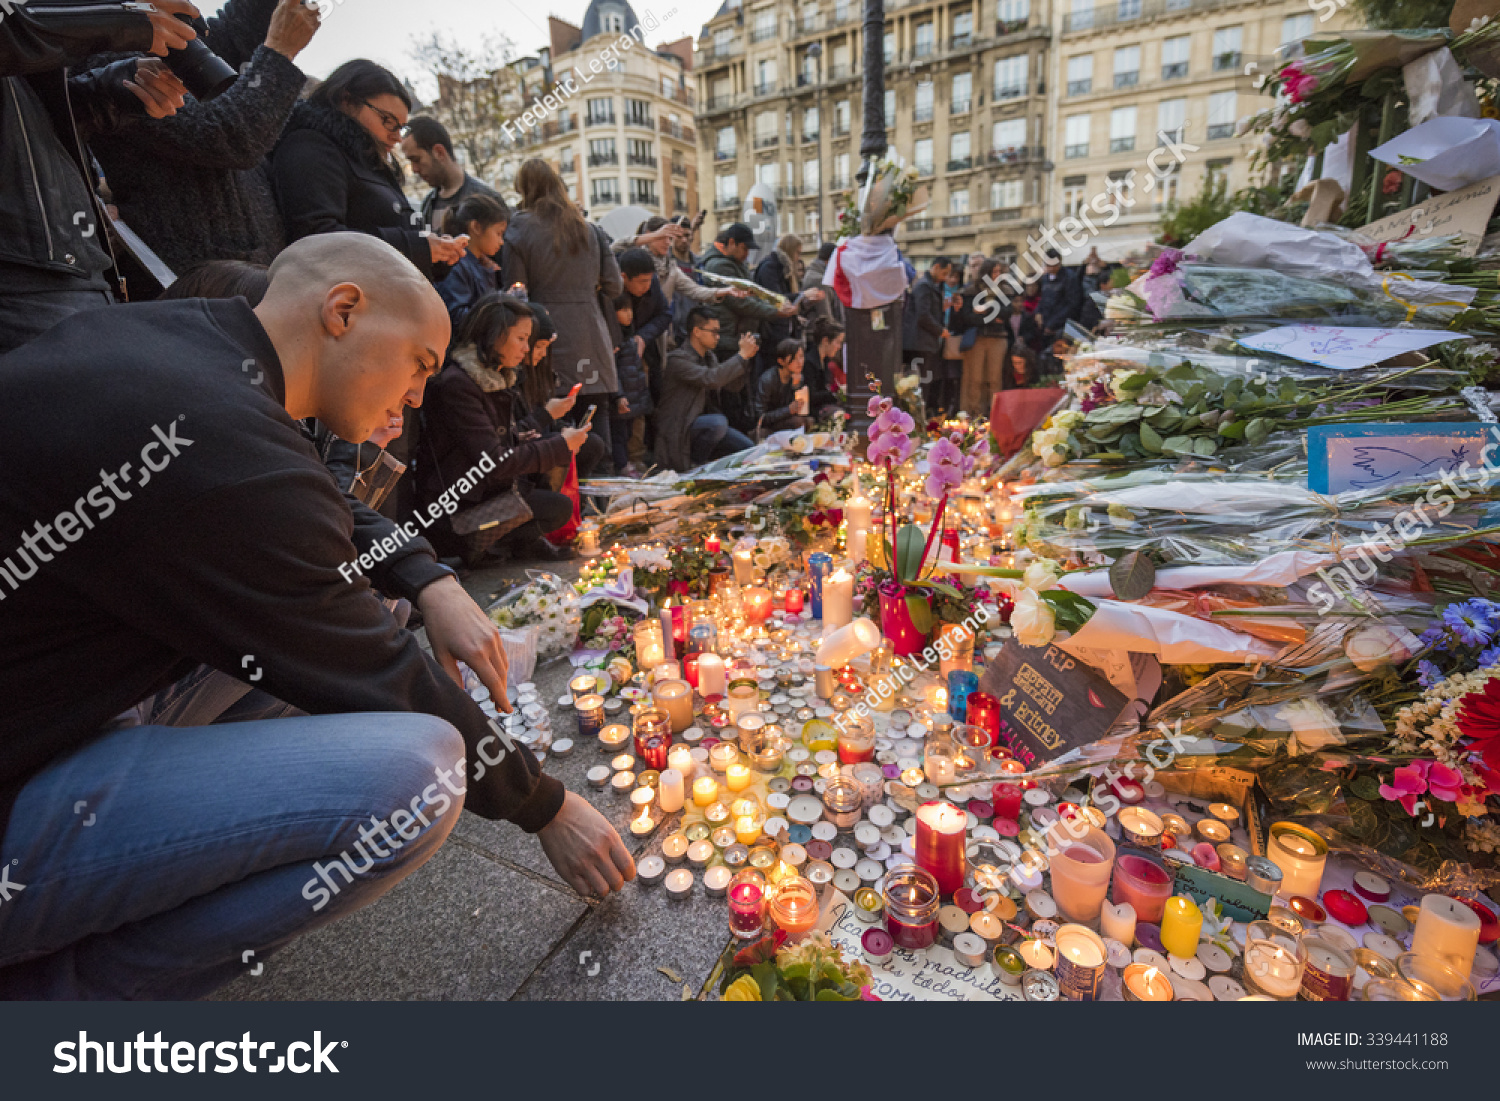 PARIS FRANCE NOVEMBER 15 2015 A man lights a candle in front of the theater Le Bataclan in tribute to victims of the Nov 13 2015 terrorist attack in Paris at the Bataclan